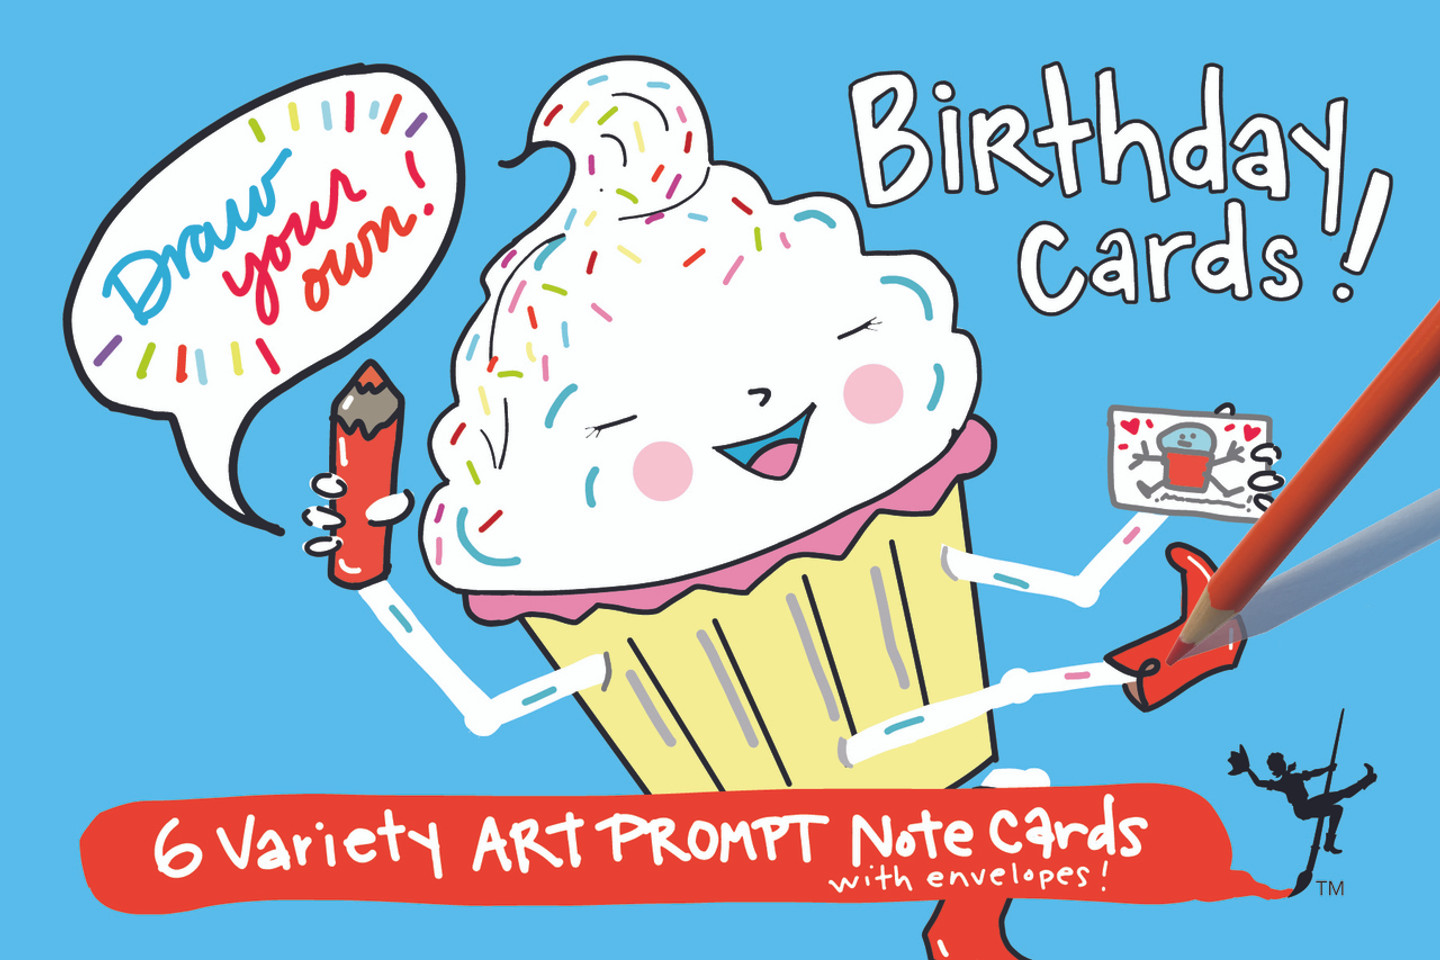 Birthday Cards | Draw Your Own (6-Variety)